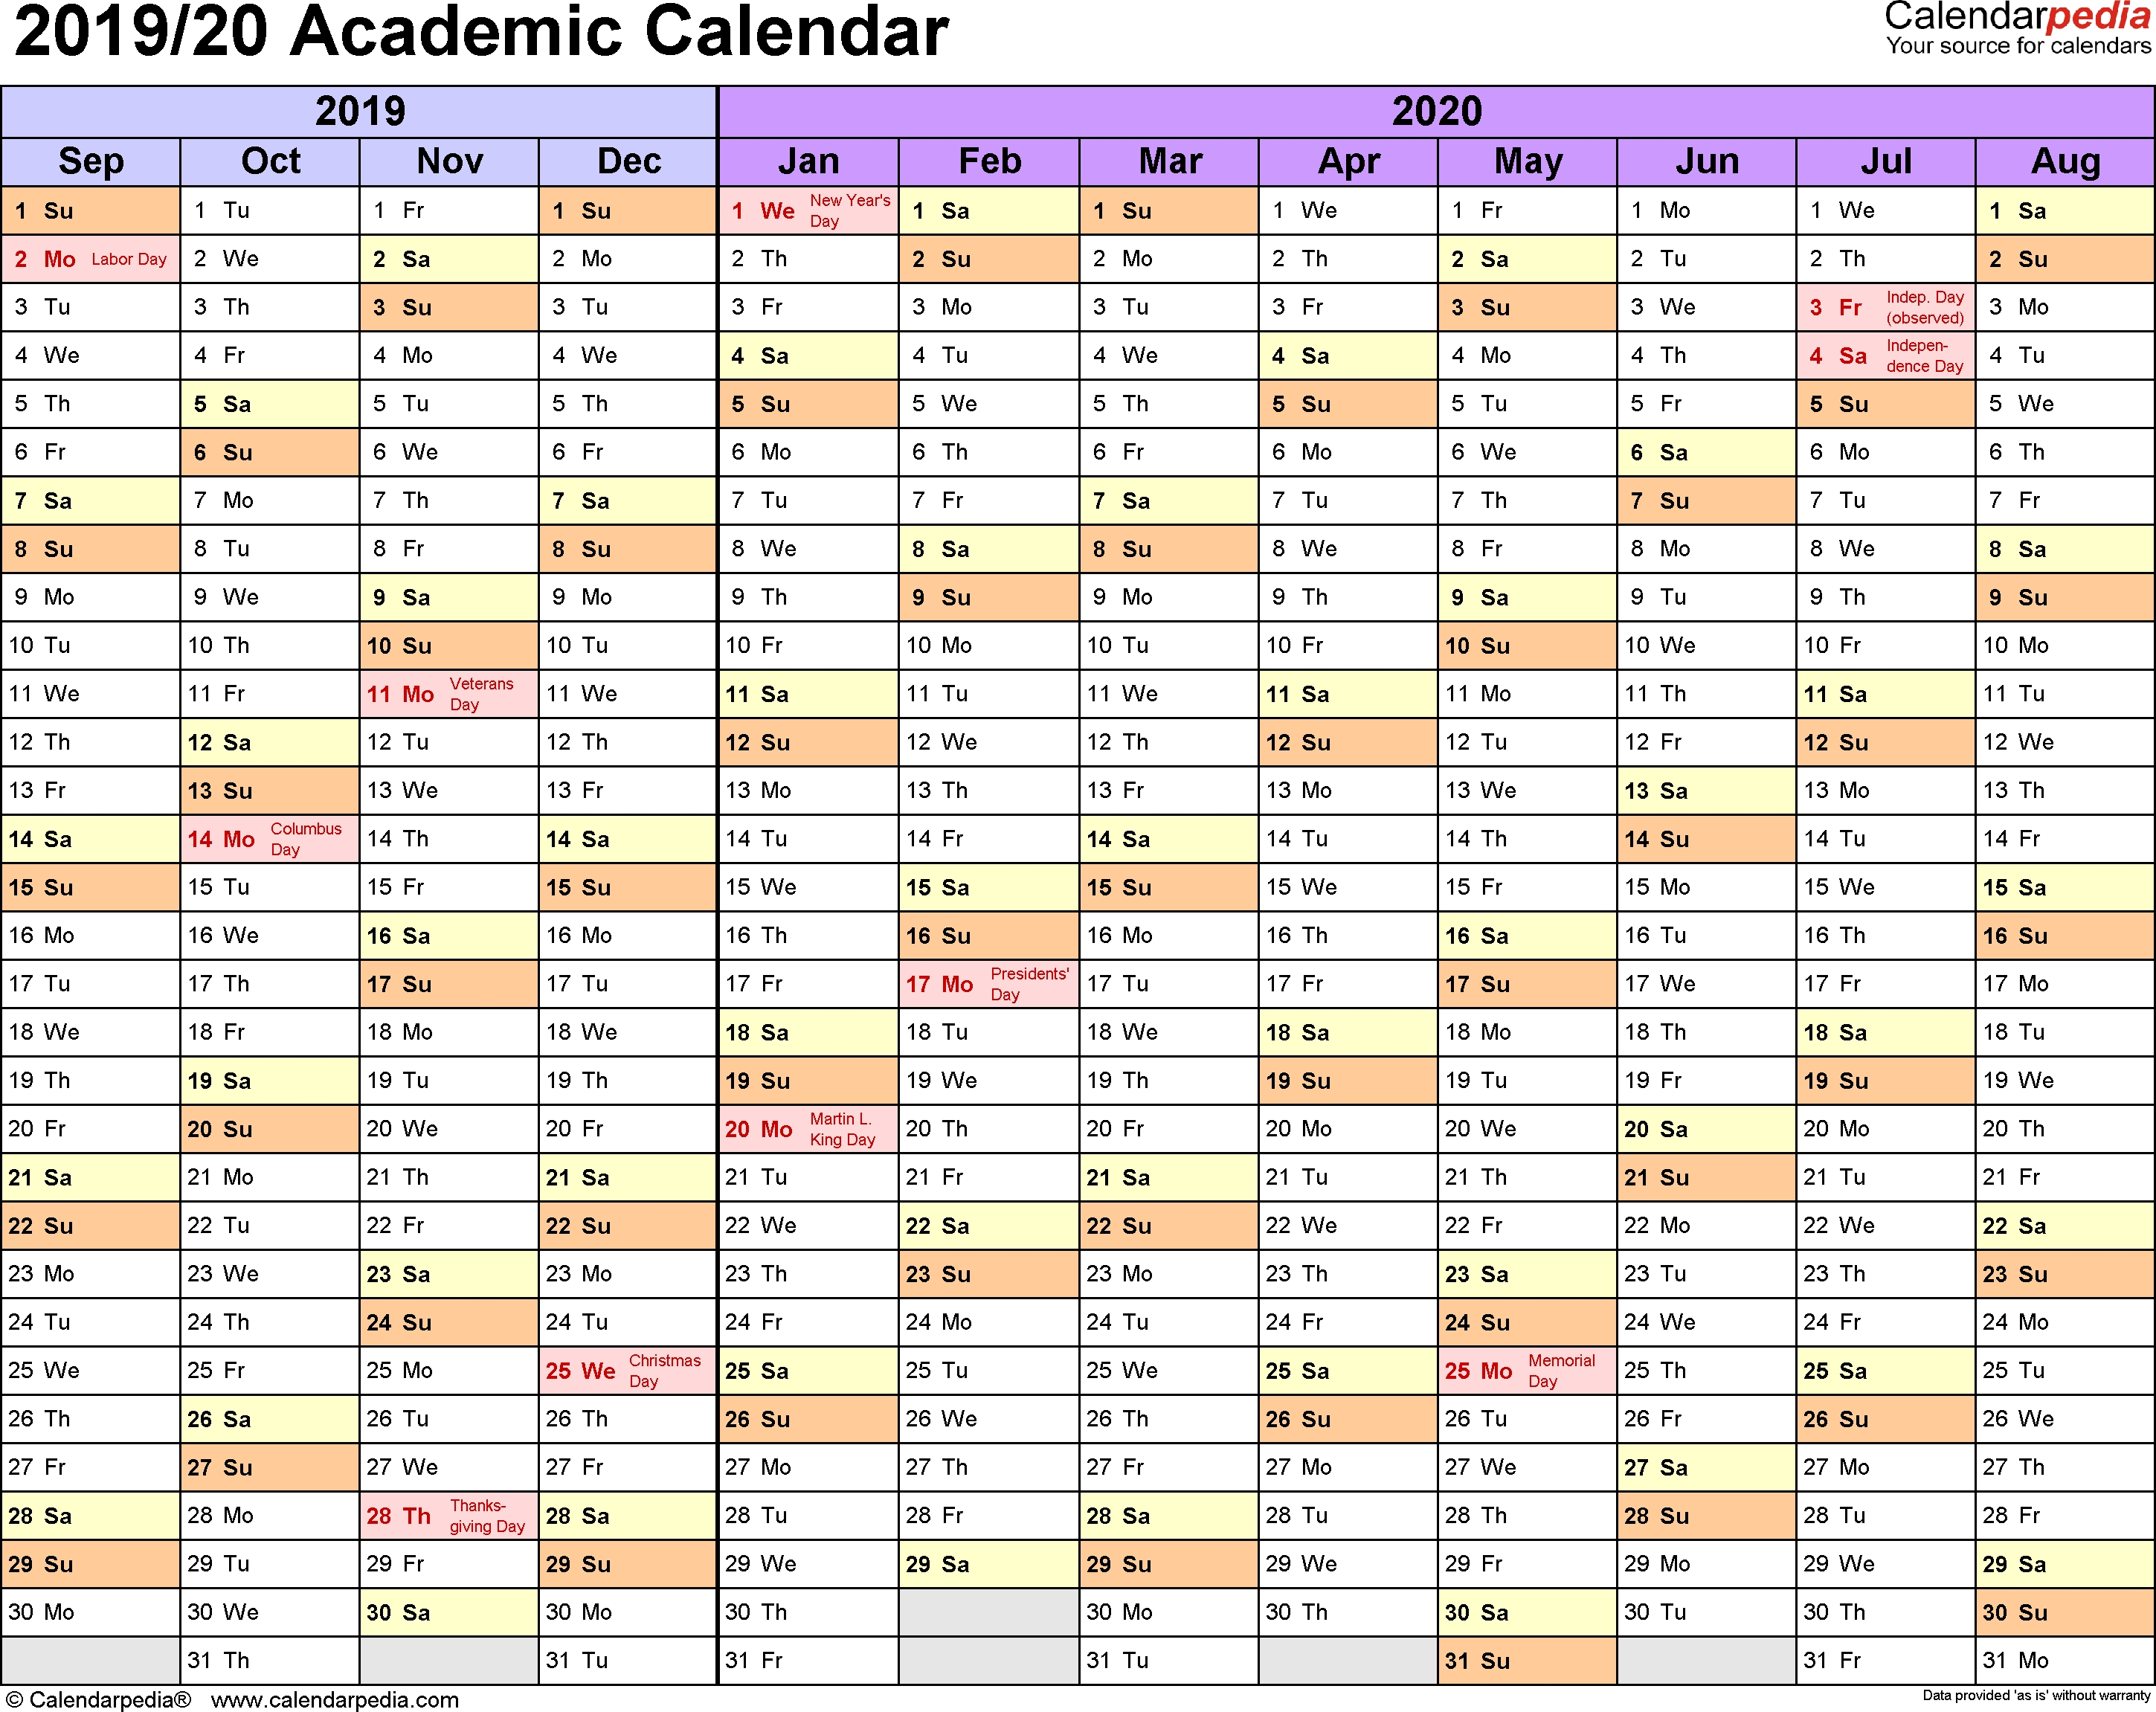 Academic Calendars 2019/2020 - Free Printable Excel Templates with regard to Calendar 2019-2020 Important Dates